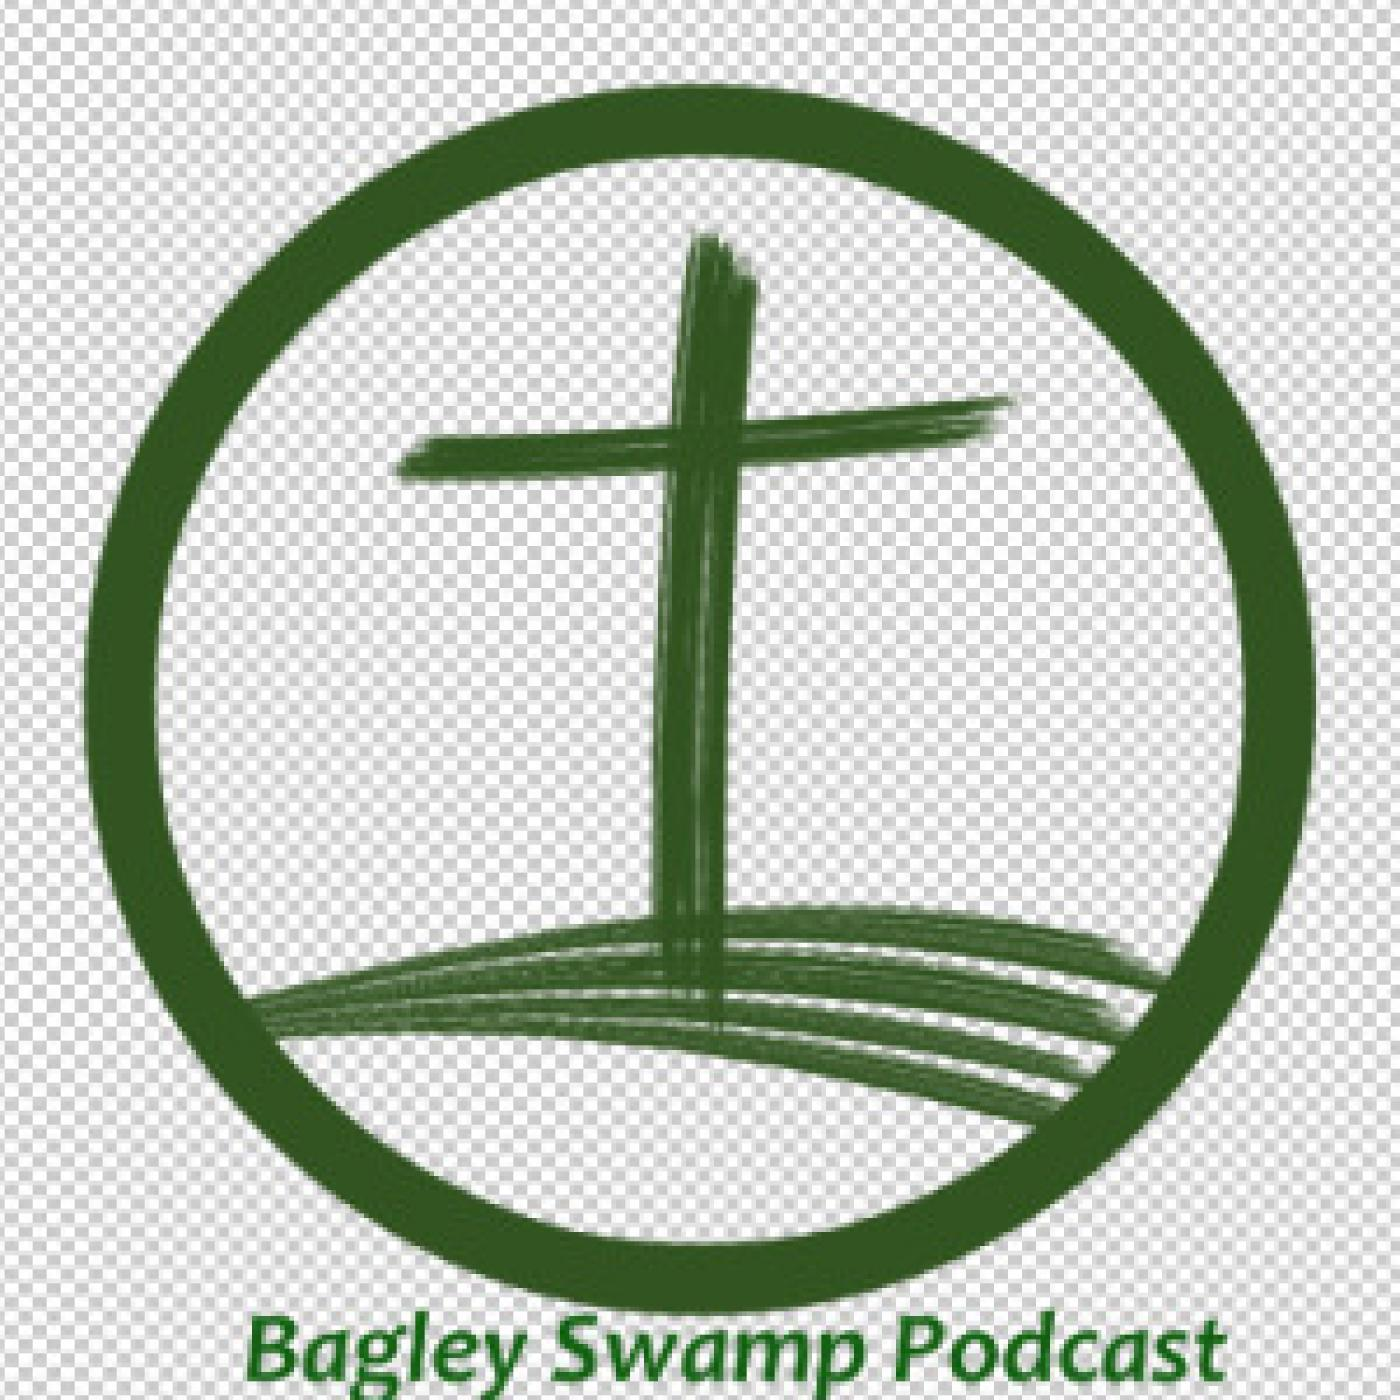 Bagley Swamp Podcast